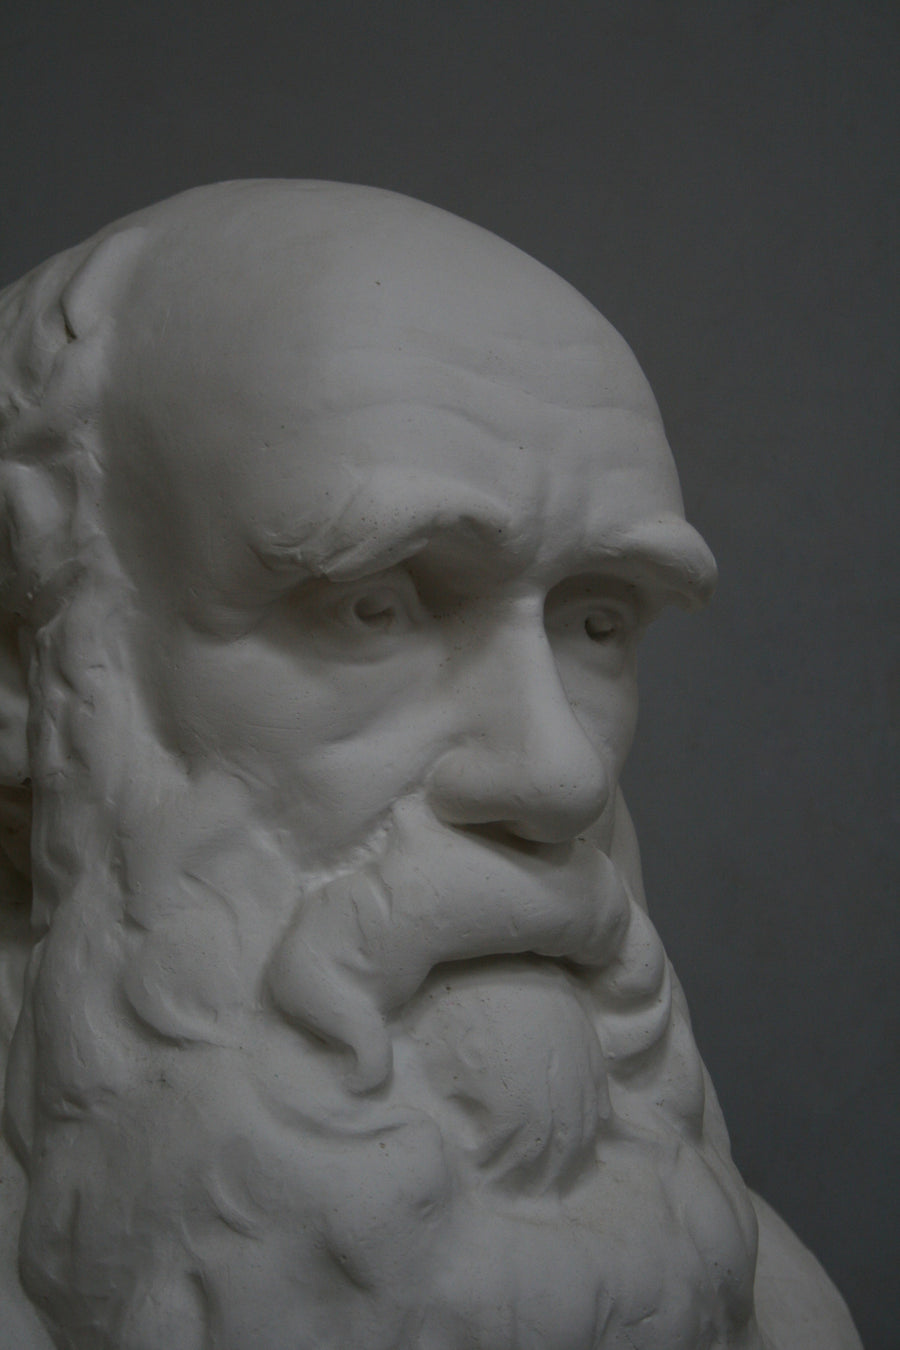 closeup photo with gray background of plaster cast bust of man, namely Charles Darwin, with suit jacket and long beard